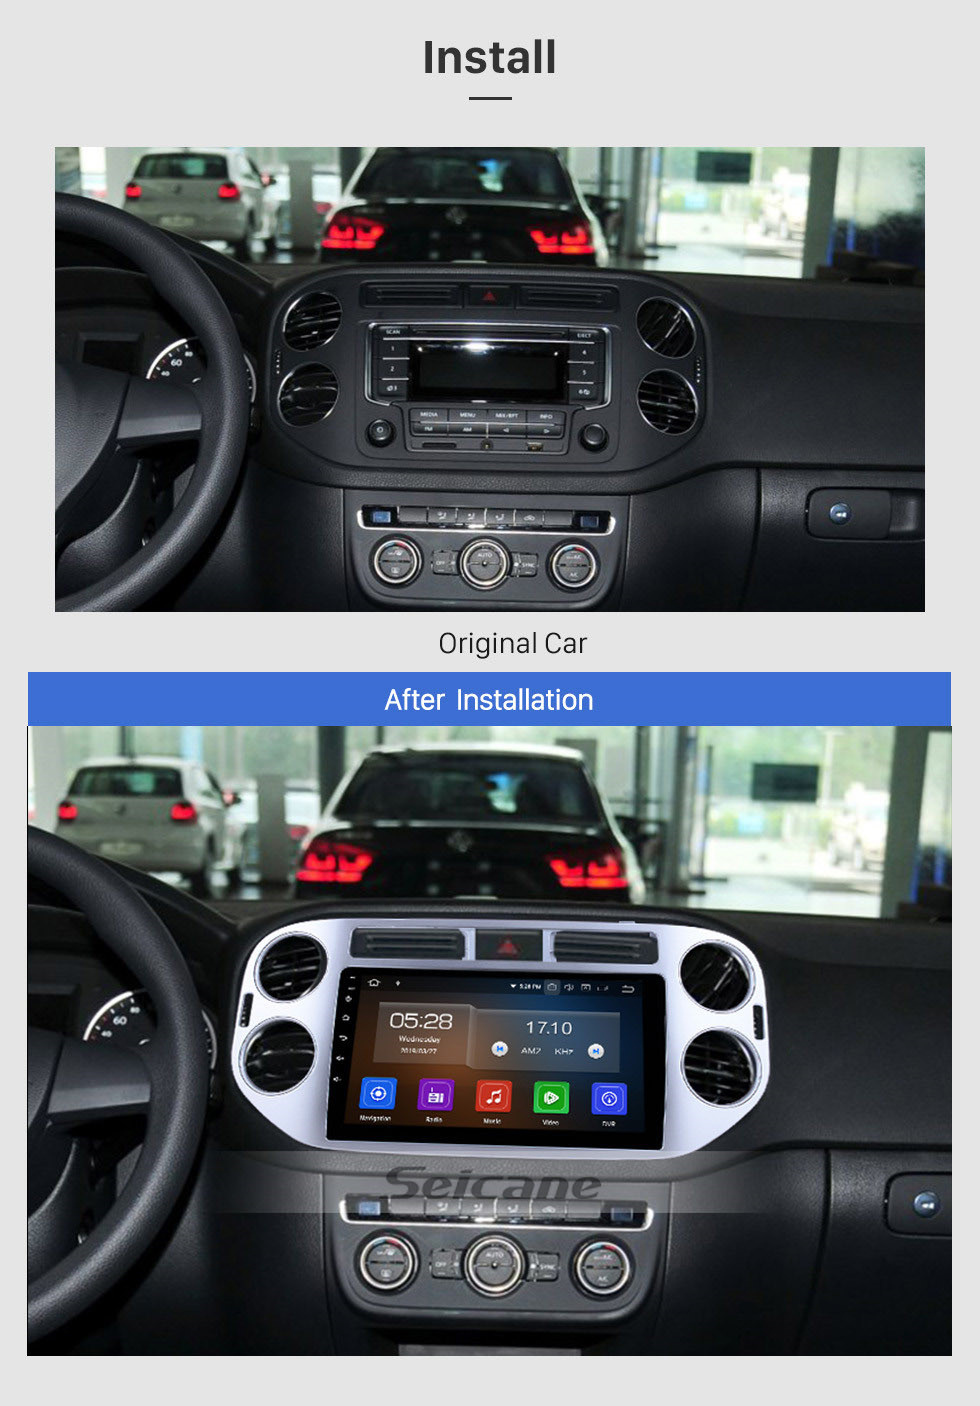 Seicane 9 Inch Android 10.0 Bluetooth Radio For 2010 2011 2012 2013 2014 2015 VW Volkswagen Tiguan WiFi GPS Navigation system Touch Screen Bluetooth TPMS DVR OBD II Rear camera AUX USB Carplay